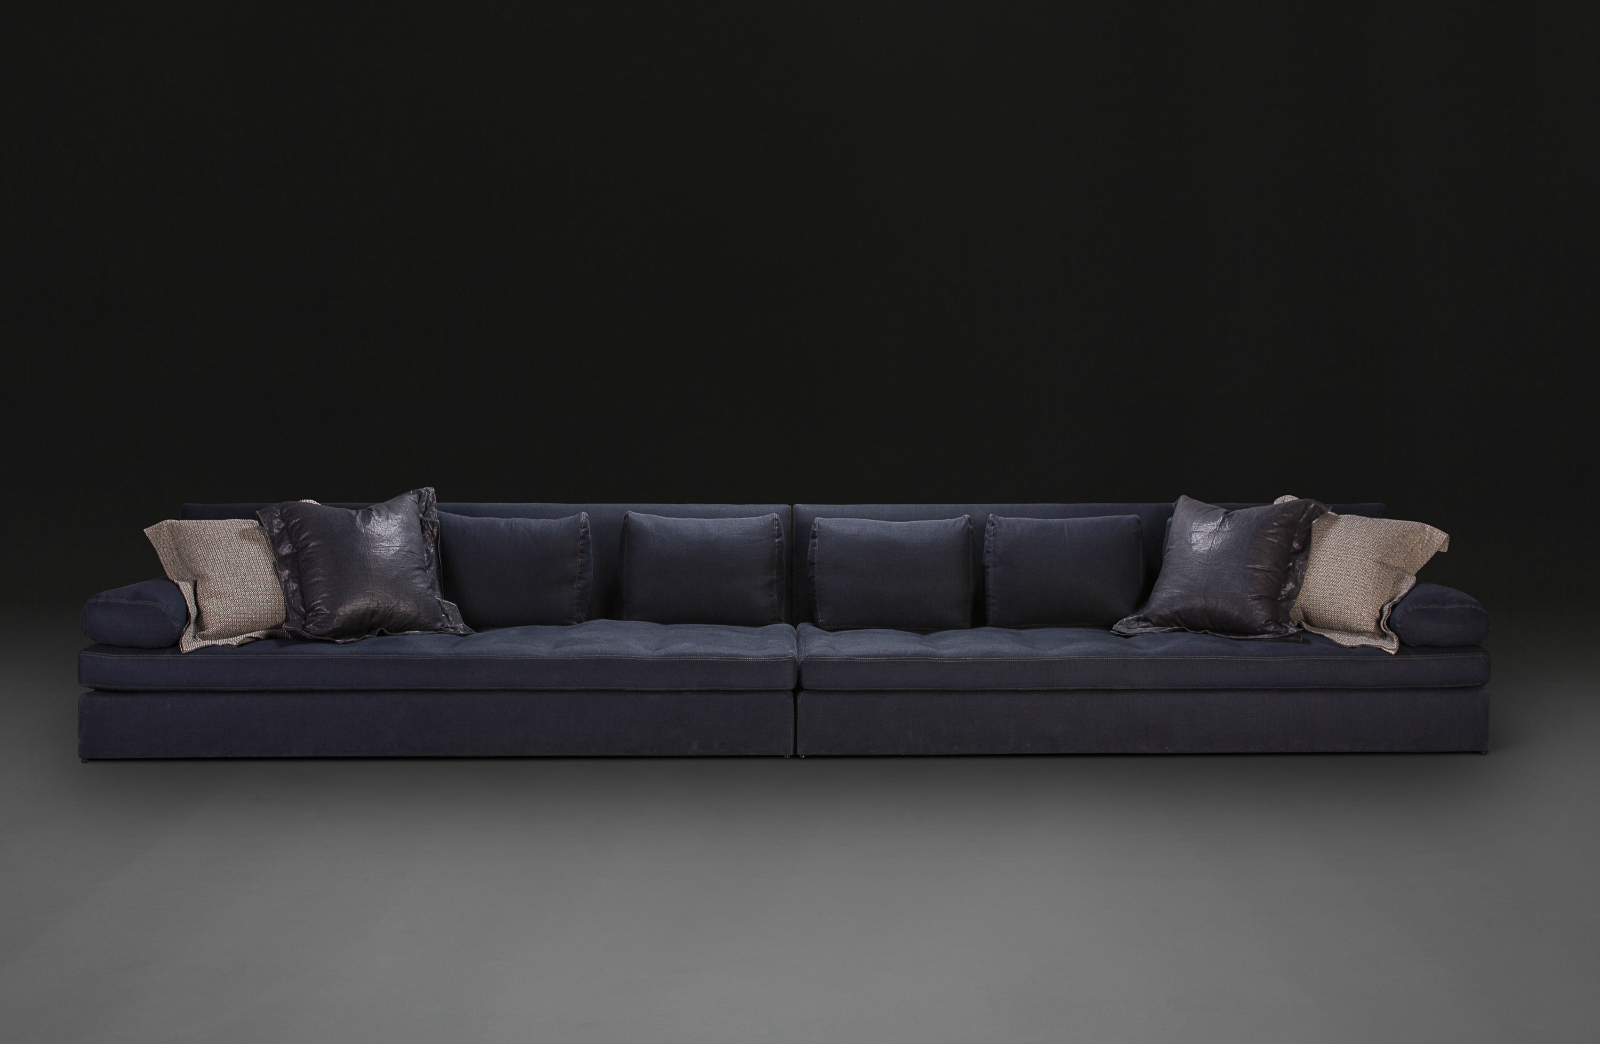 extra large sofa by verellen woontheater. Black Bedroom Furniture Sets. Home Design Ideas